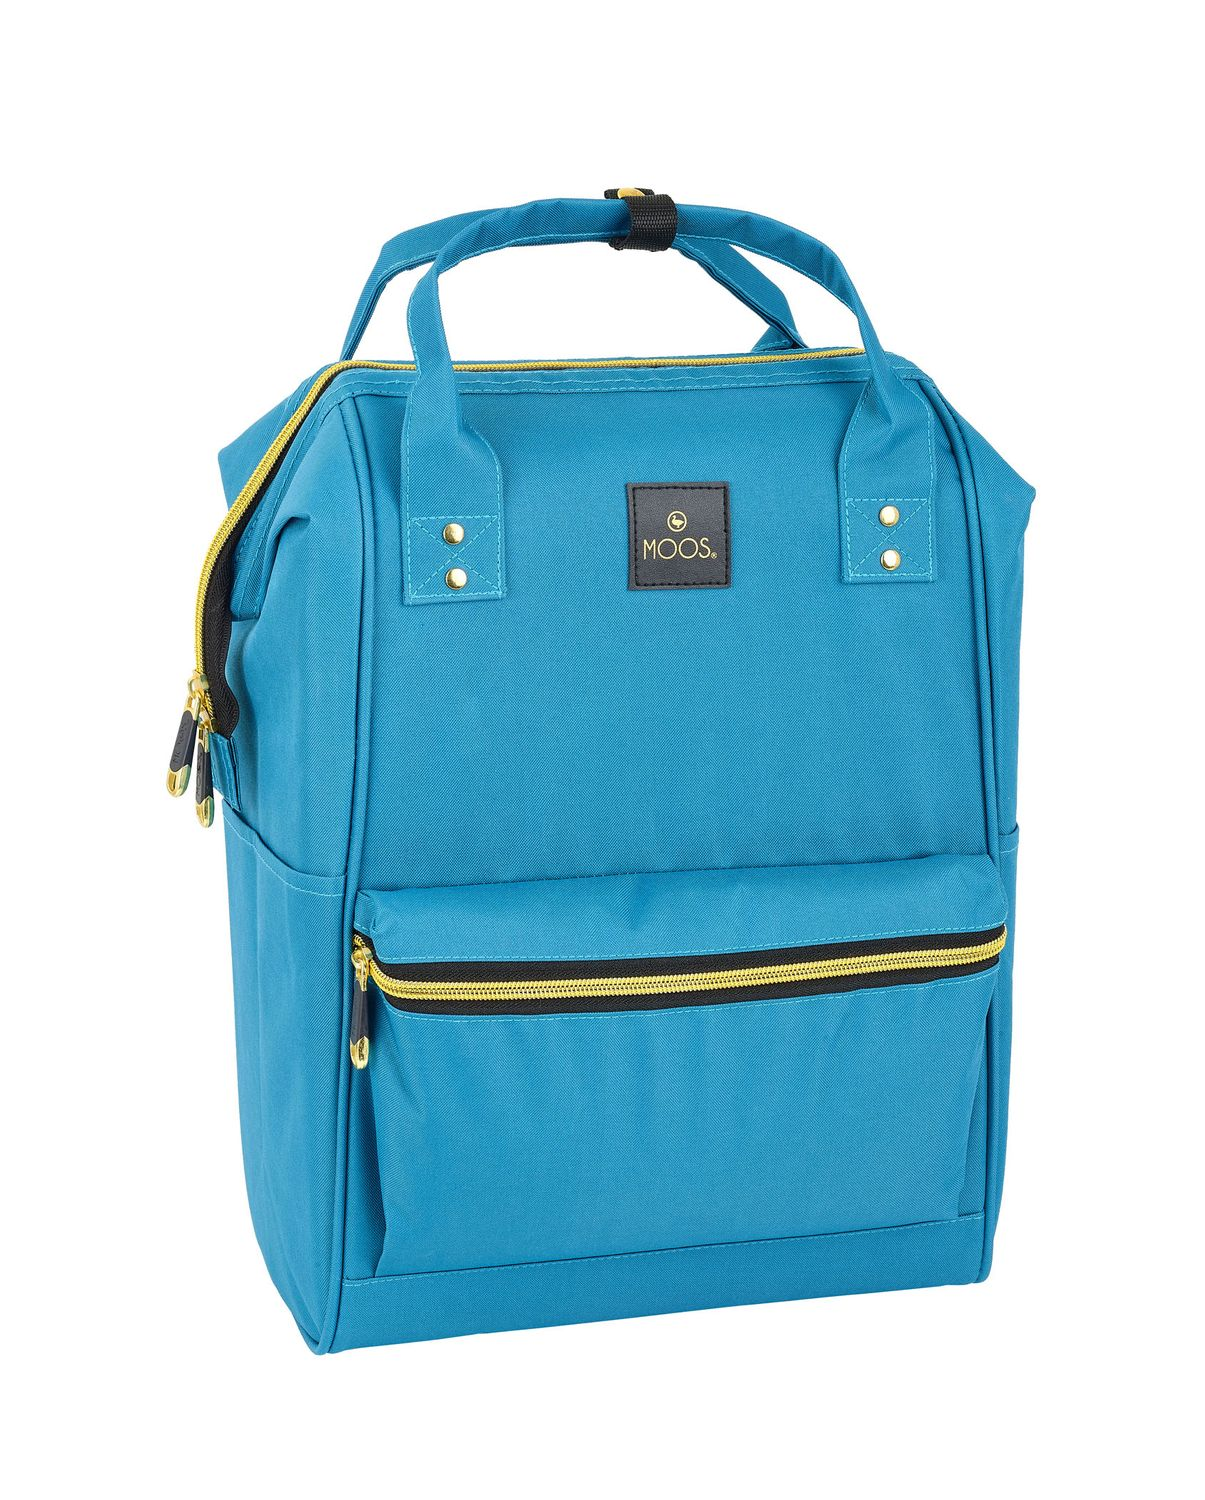 Laptop Backpack DELUXE 40 cm MOOS Blue – image 1